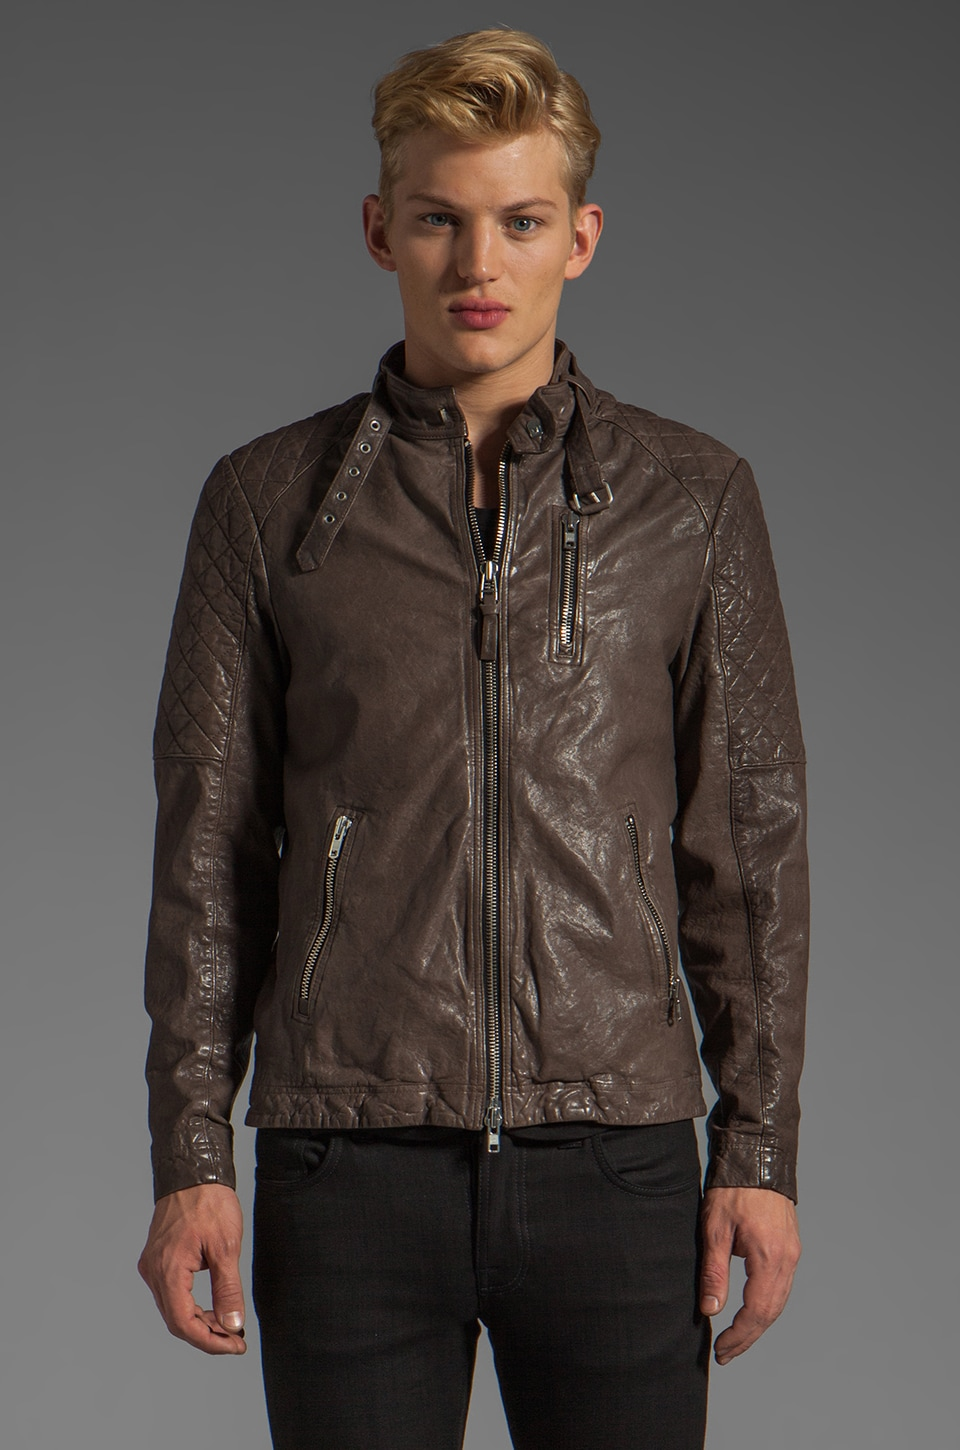 Mackage Mateo-C Leather Jacket in Light Grey